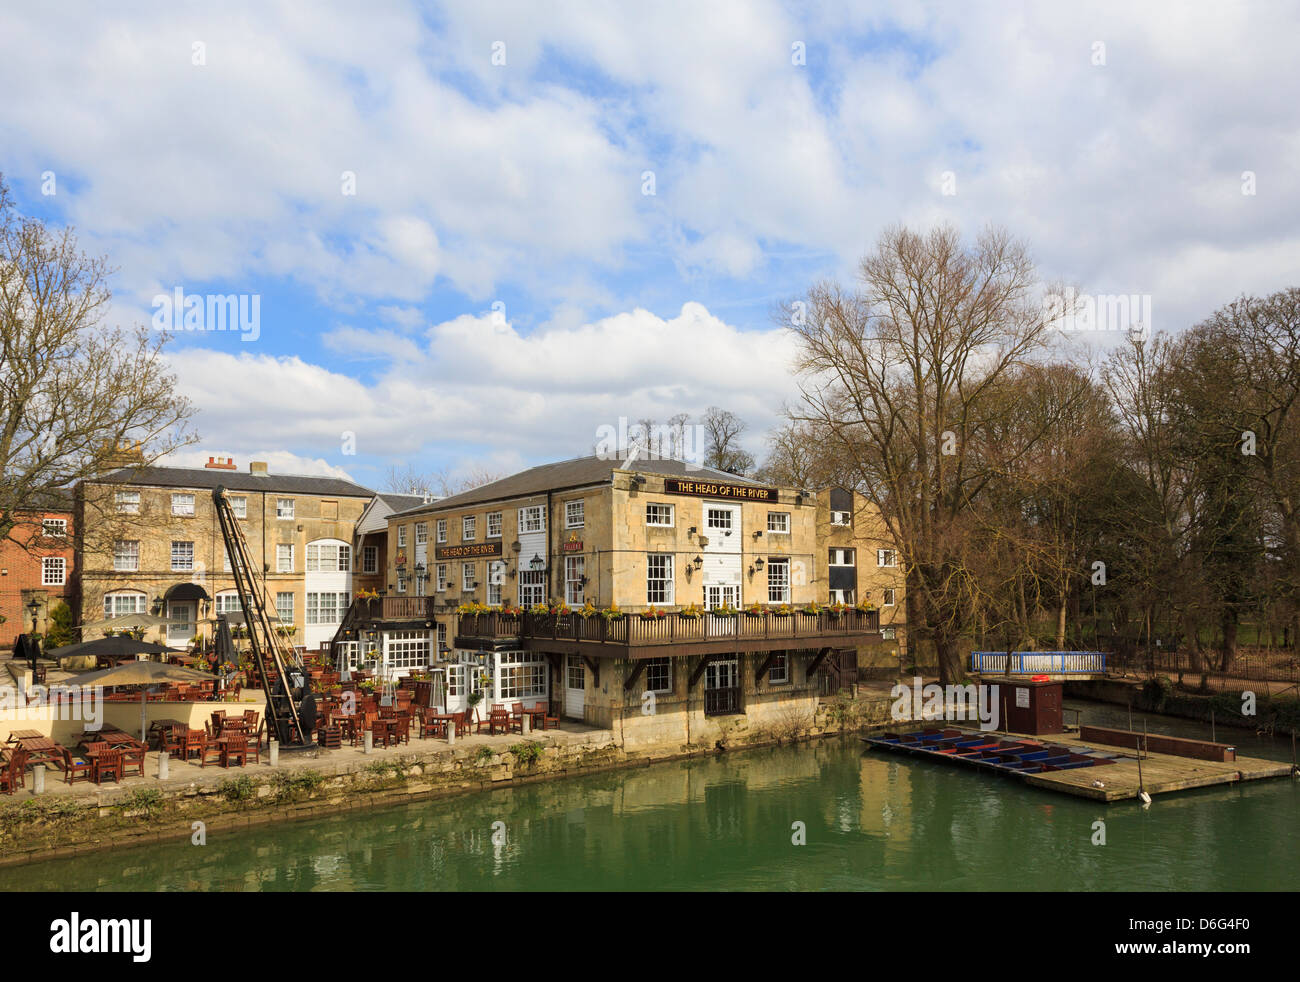 The Head of the River Fuller's riverside pub on River Thames from Folly Bridge in Oxford, Oxfordshire, England, - Stock Image